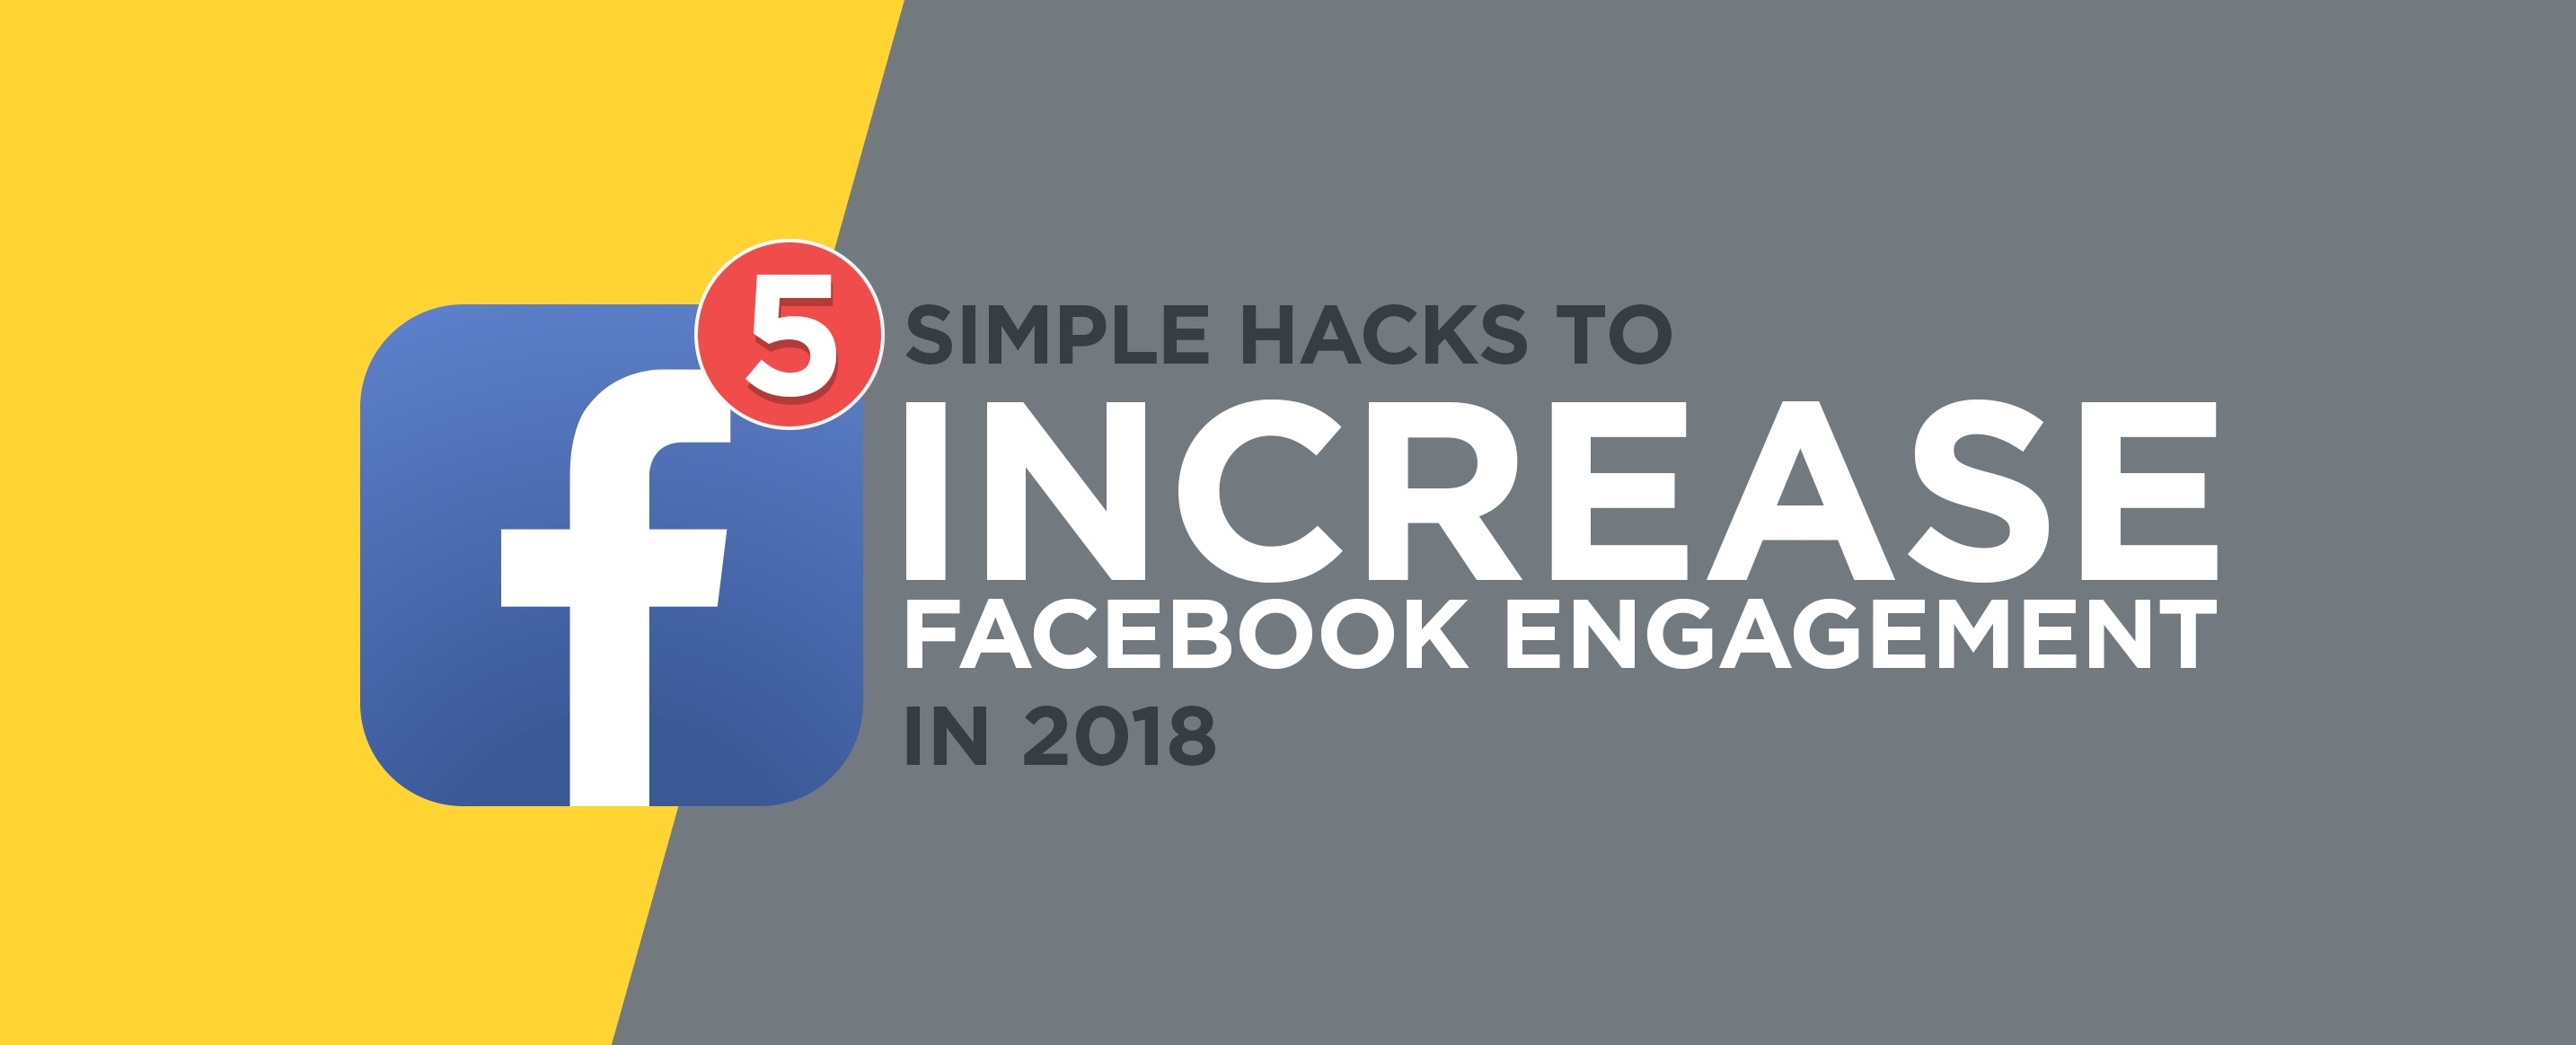 double-your-Facebook-page-engagement